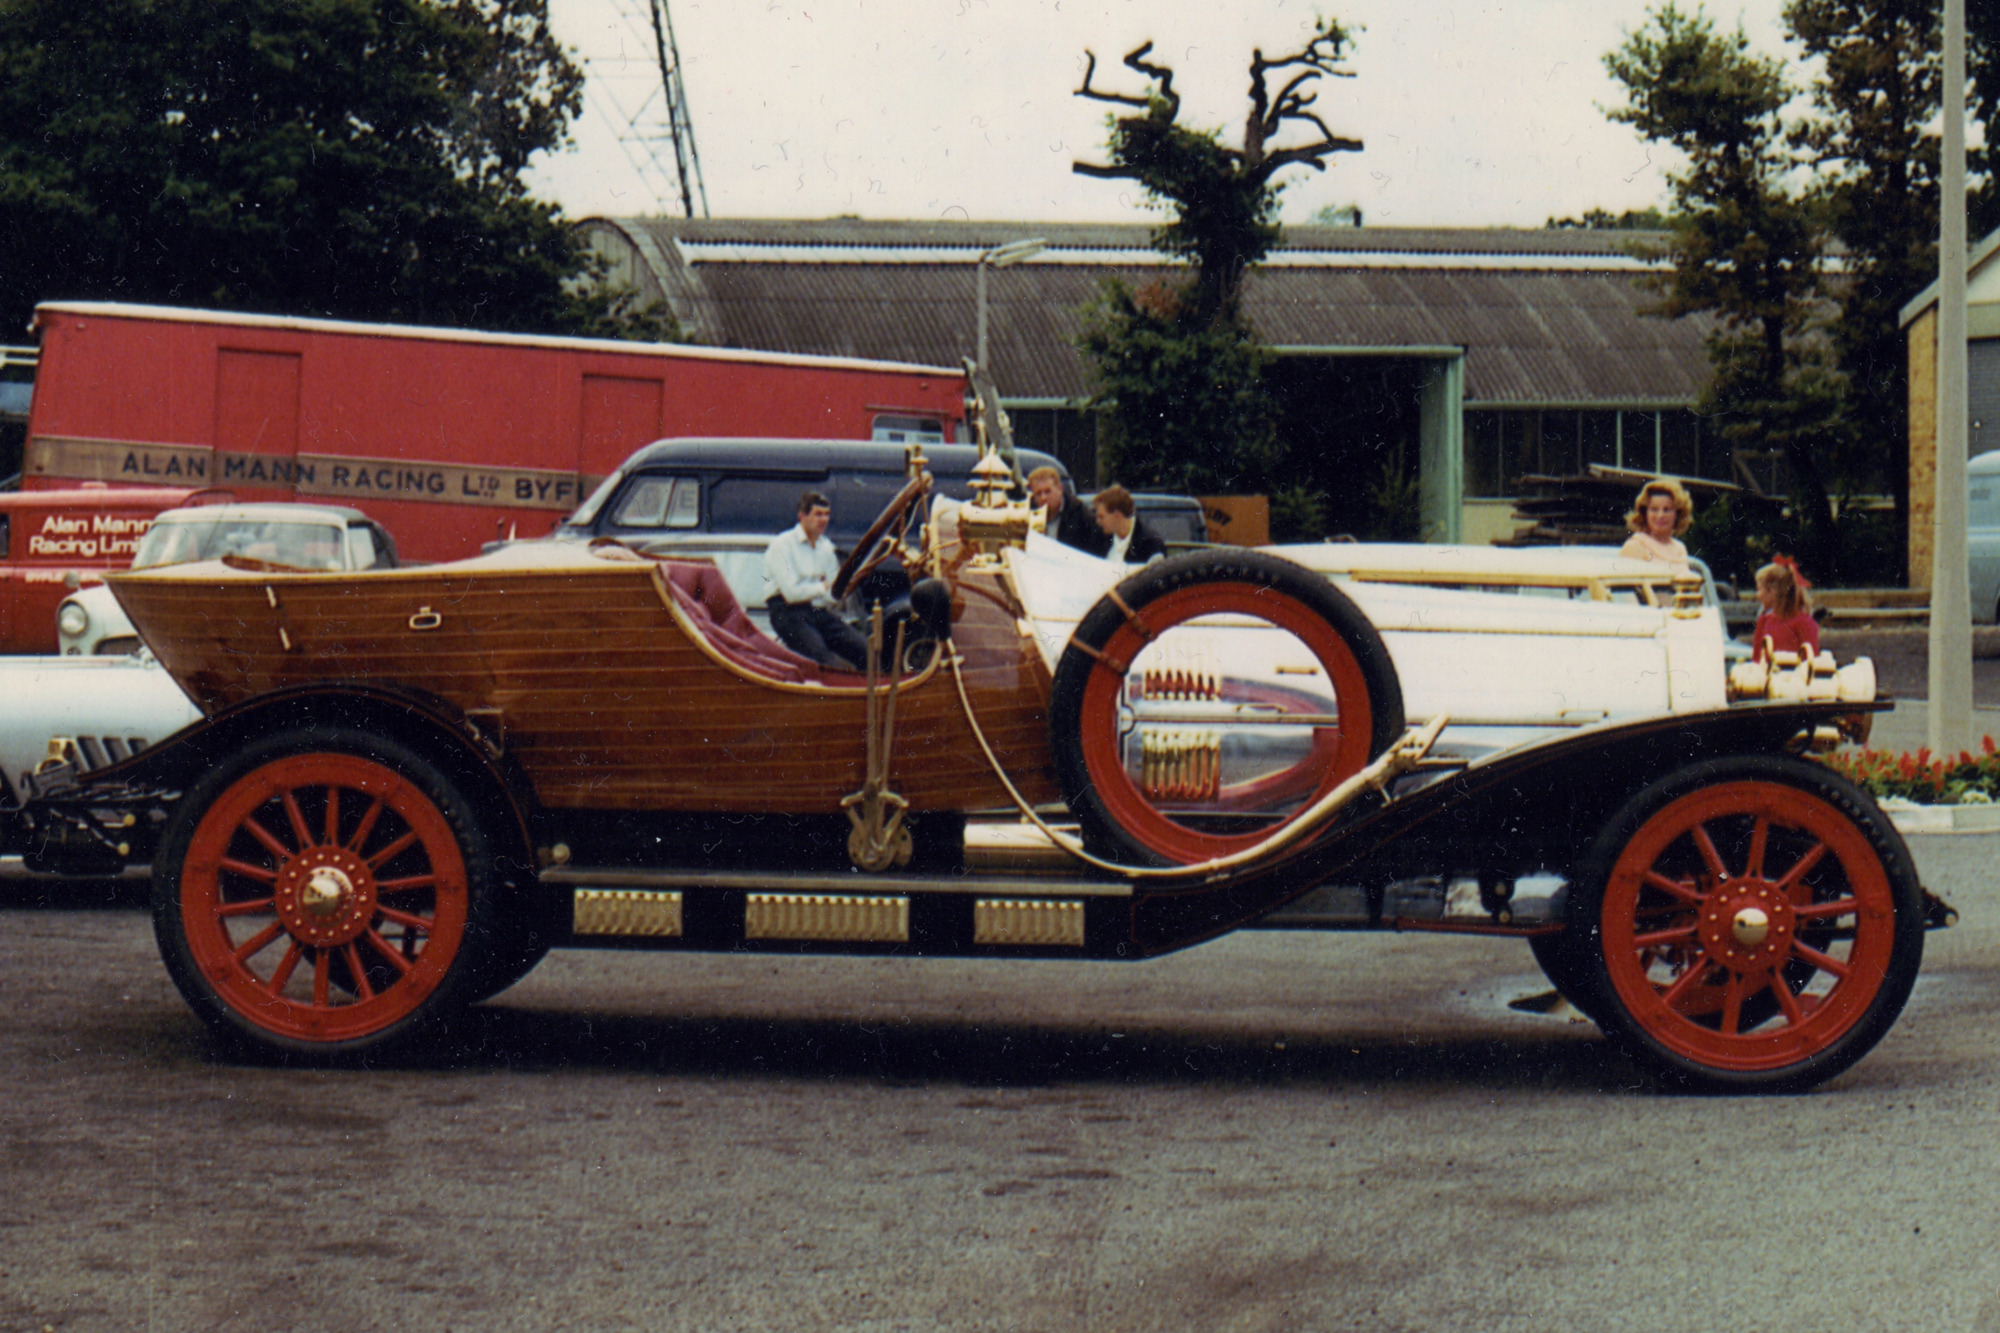 A curveball project for the Alan Mann Racing engineers and mechanics came in the form of the iconic Chitty Chitty Bang Bang designed and constructed for the movie of the same name. Inspired by vintage racers Chitty used the engine and gearbox from a Ford Zodiac along with custom made Goodyear tyres for its 34-inch wheels!